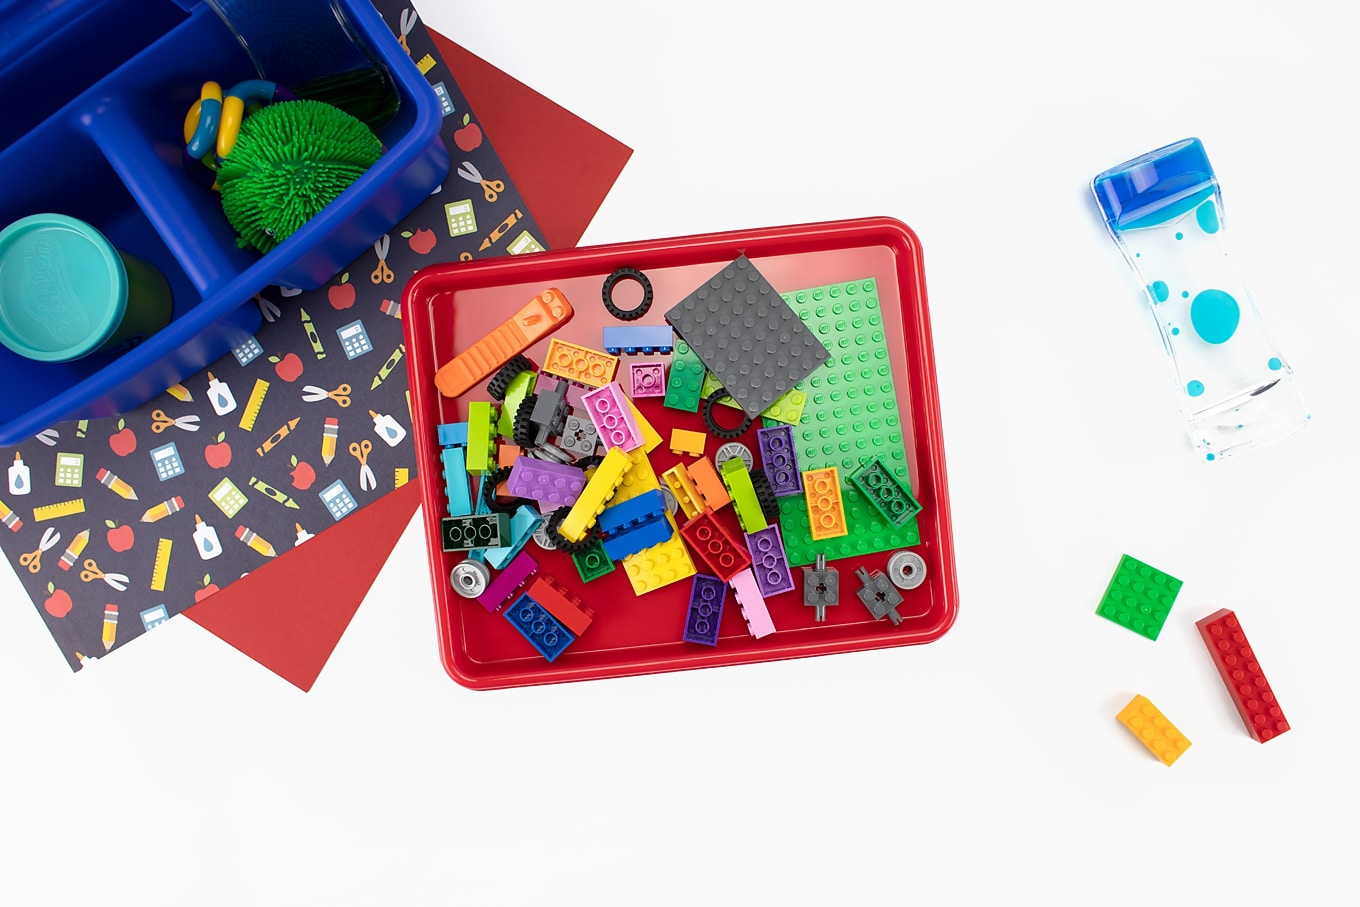 LEGOs on a Mini Sensory Tray